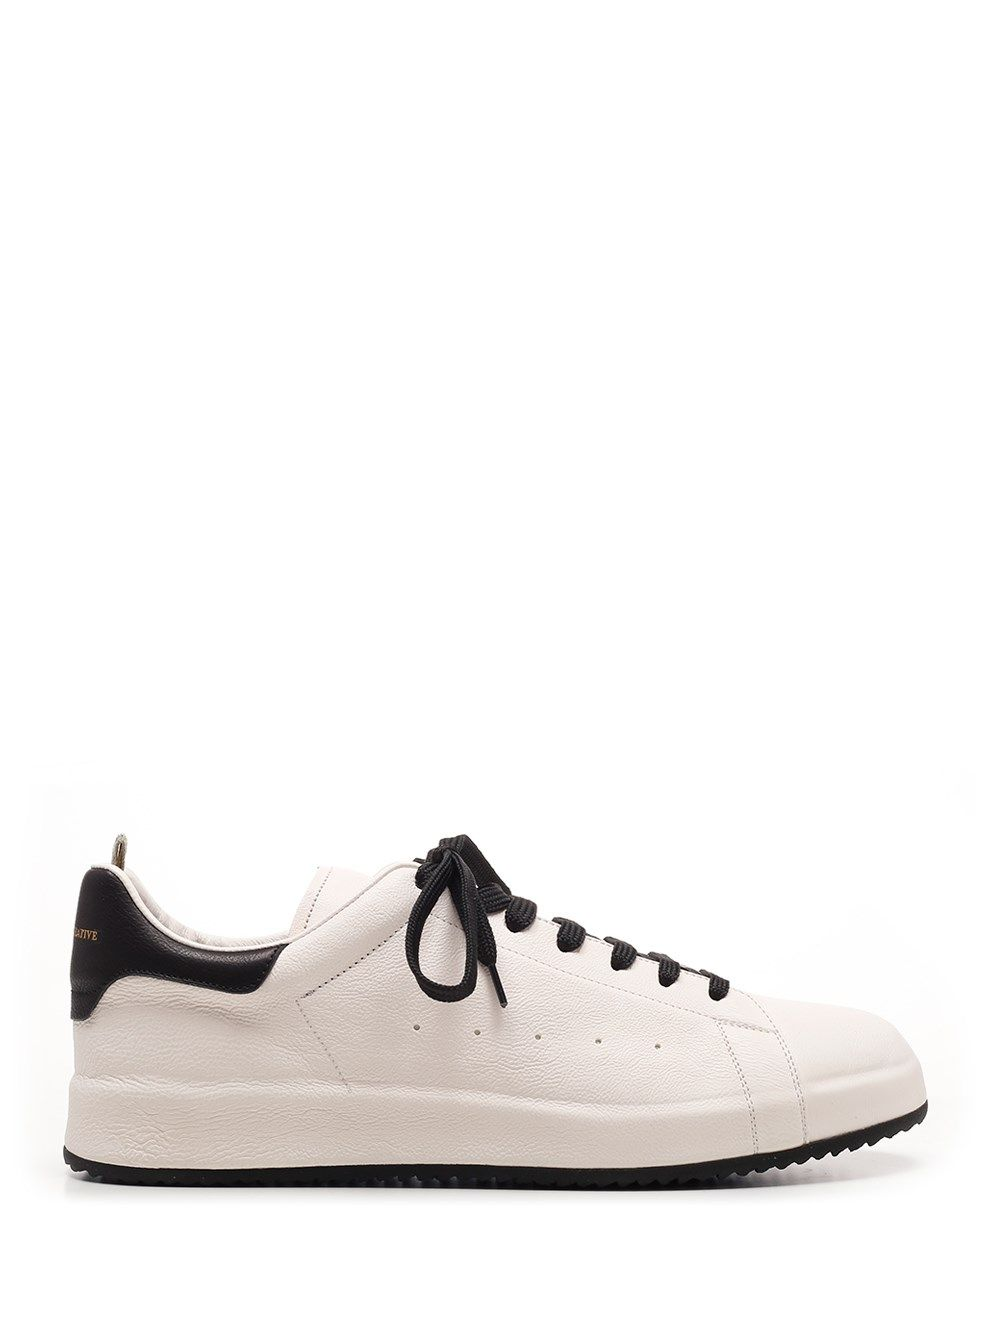 Officine Creative OFFICINE CREATIVE MEN'S WHITE OTHER MATERIALS SNEAKERS